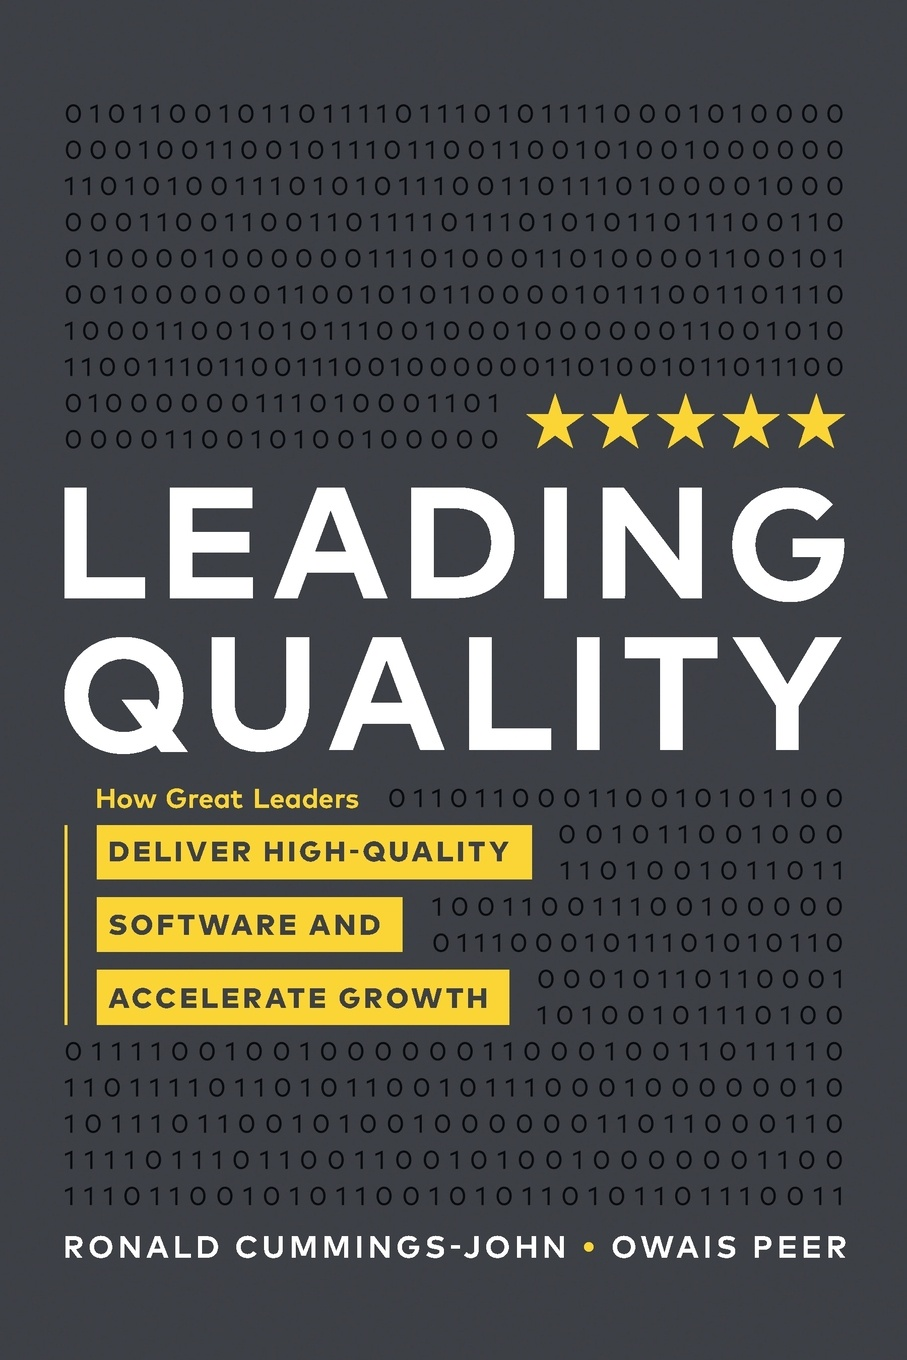 Ronald Cummings - John, Owais Peer Leading Quality. How Great Leaders Deliver High Quality Software and Accelerate Growth